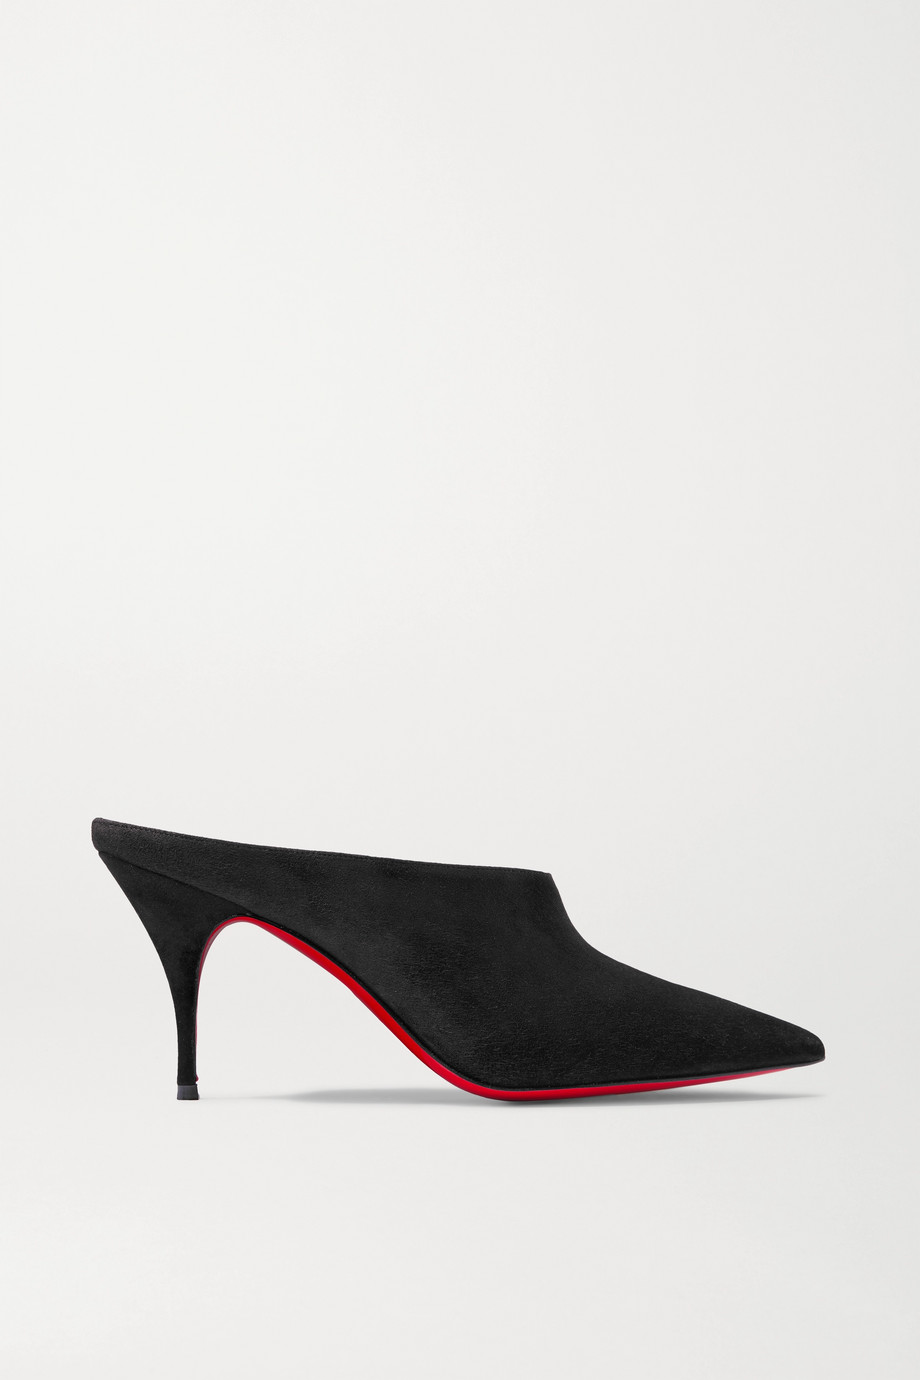 Christian Louboutin Quart 80 suede mules